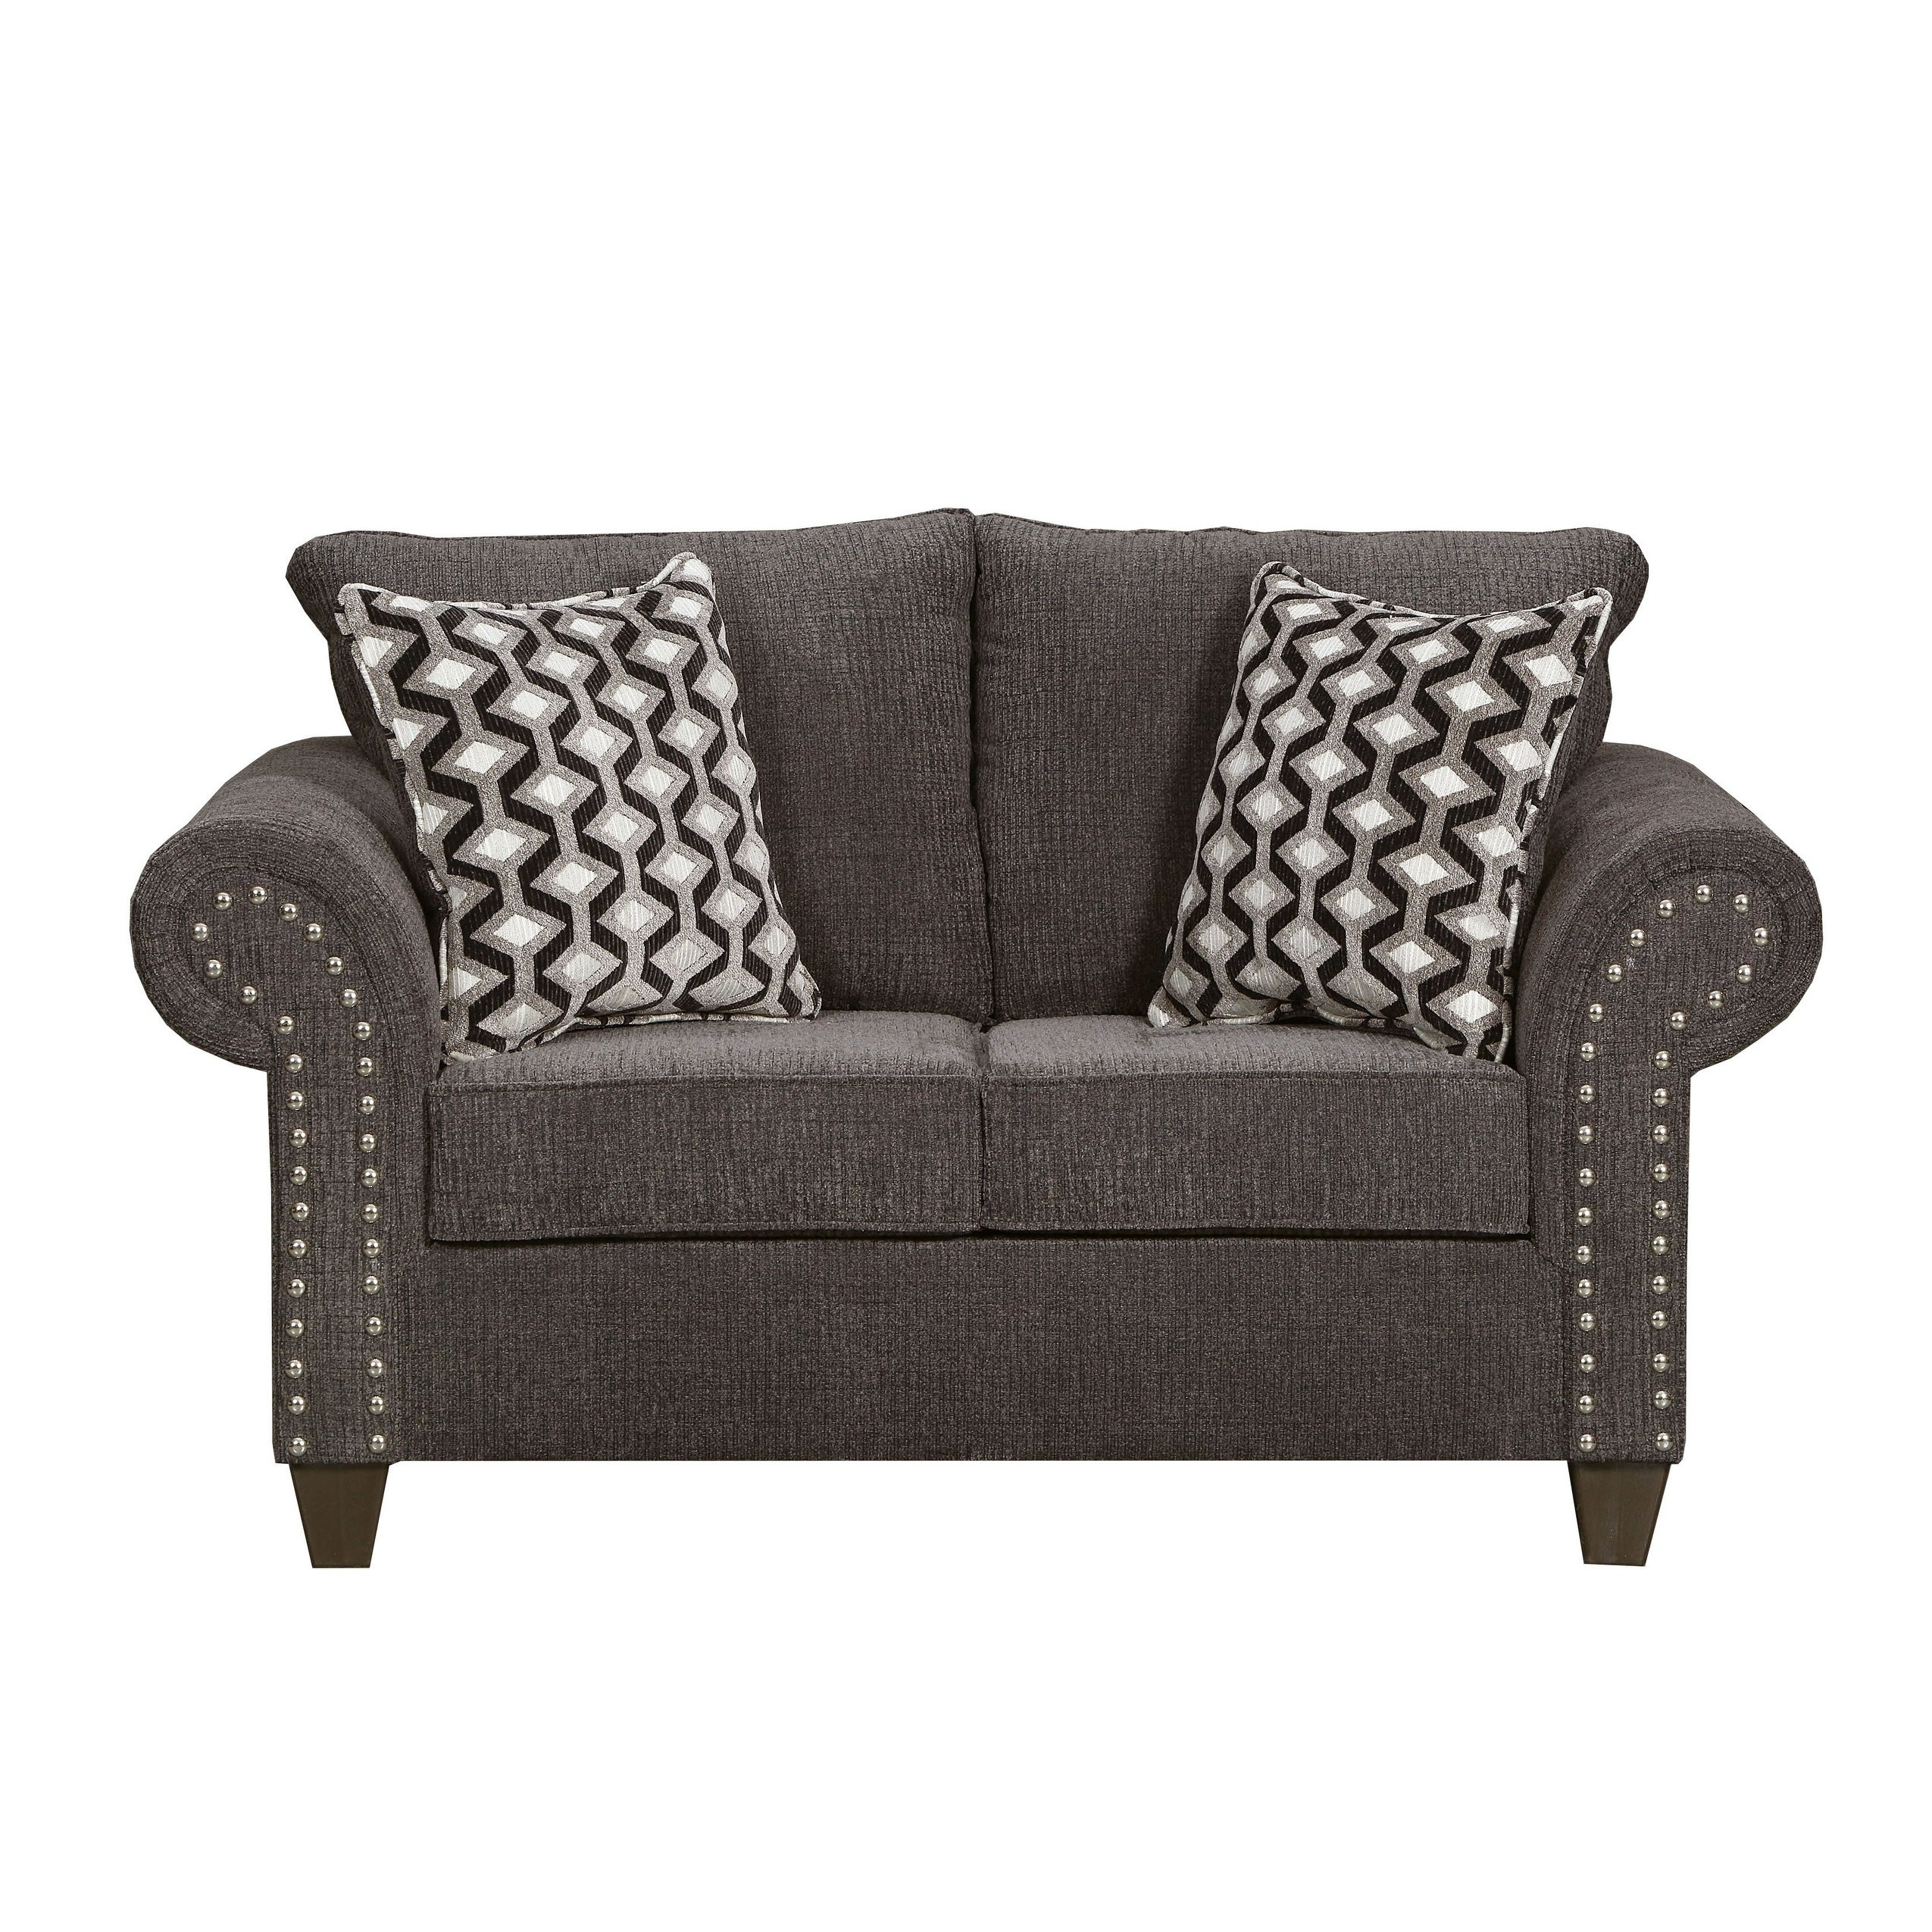 Pleasant Simmons Upholstery Reed Charcoal Loveseat Frankydiablos Diy Chair Ideas Frankydiabloscom